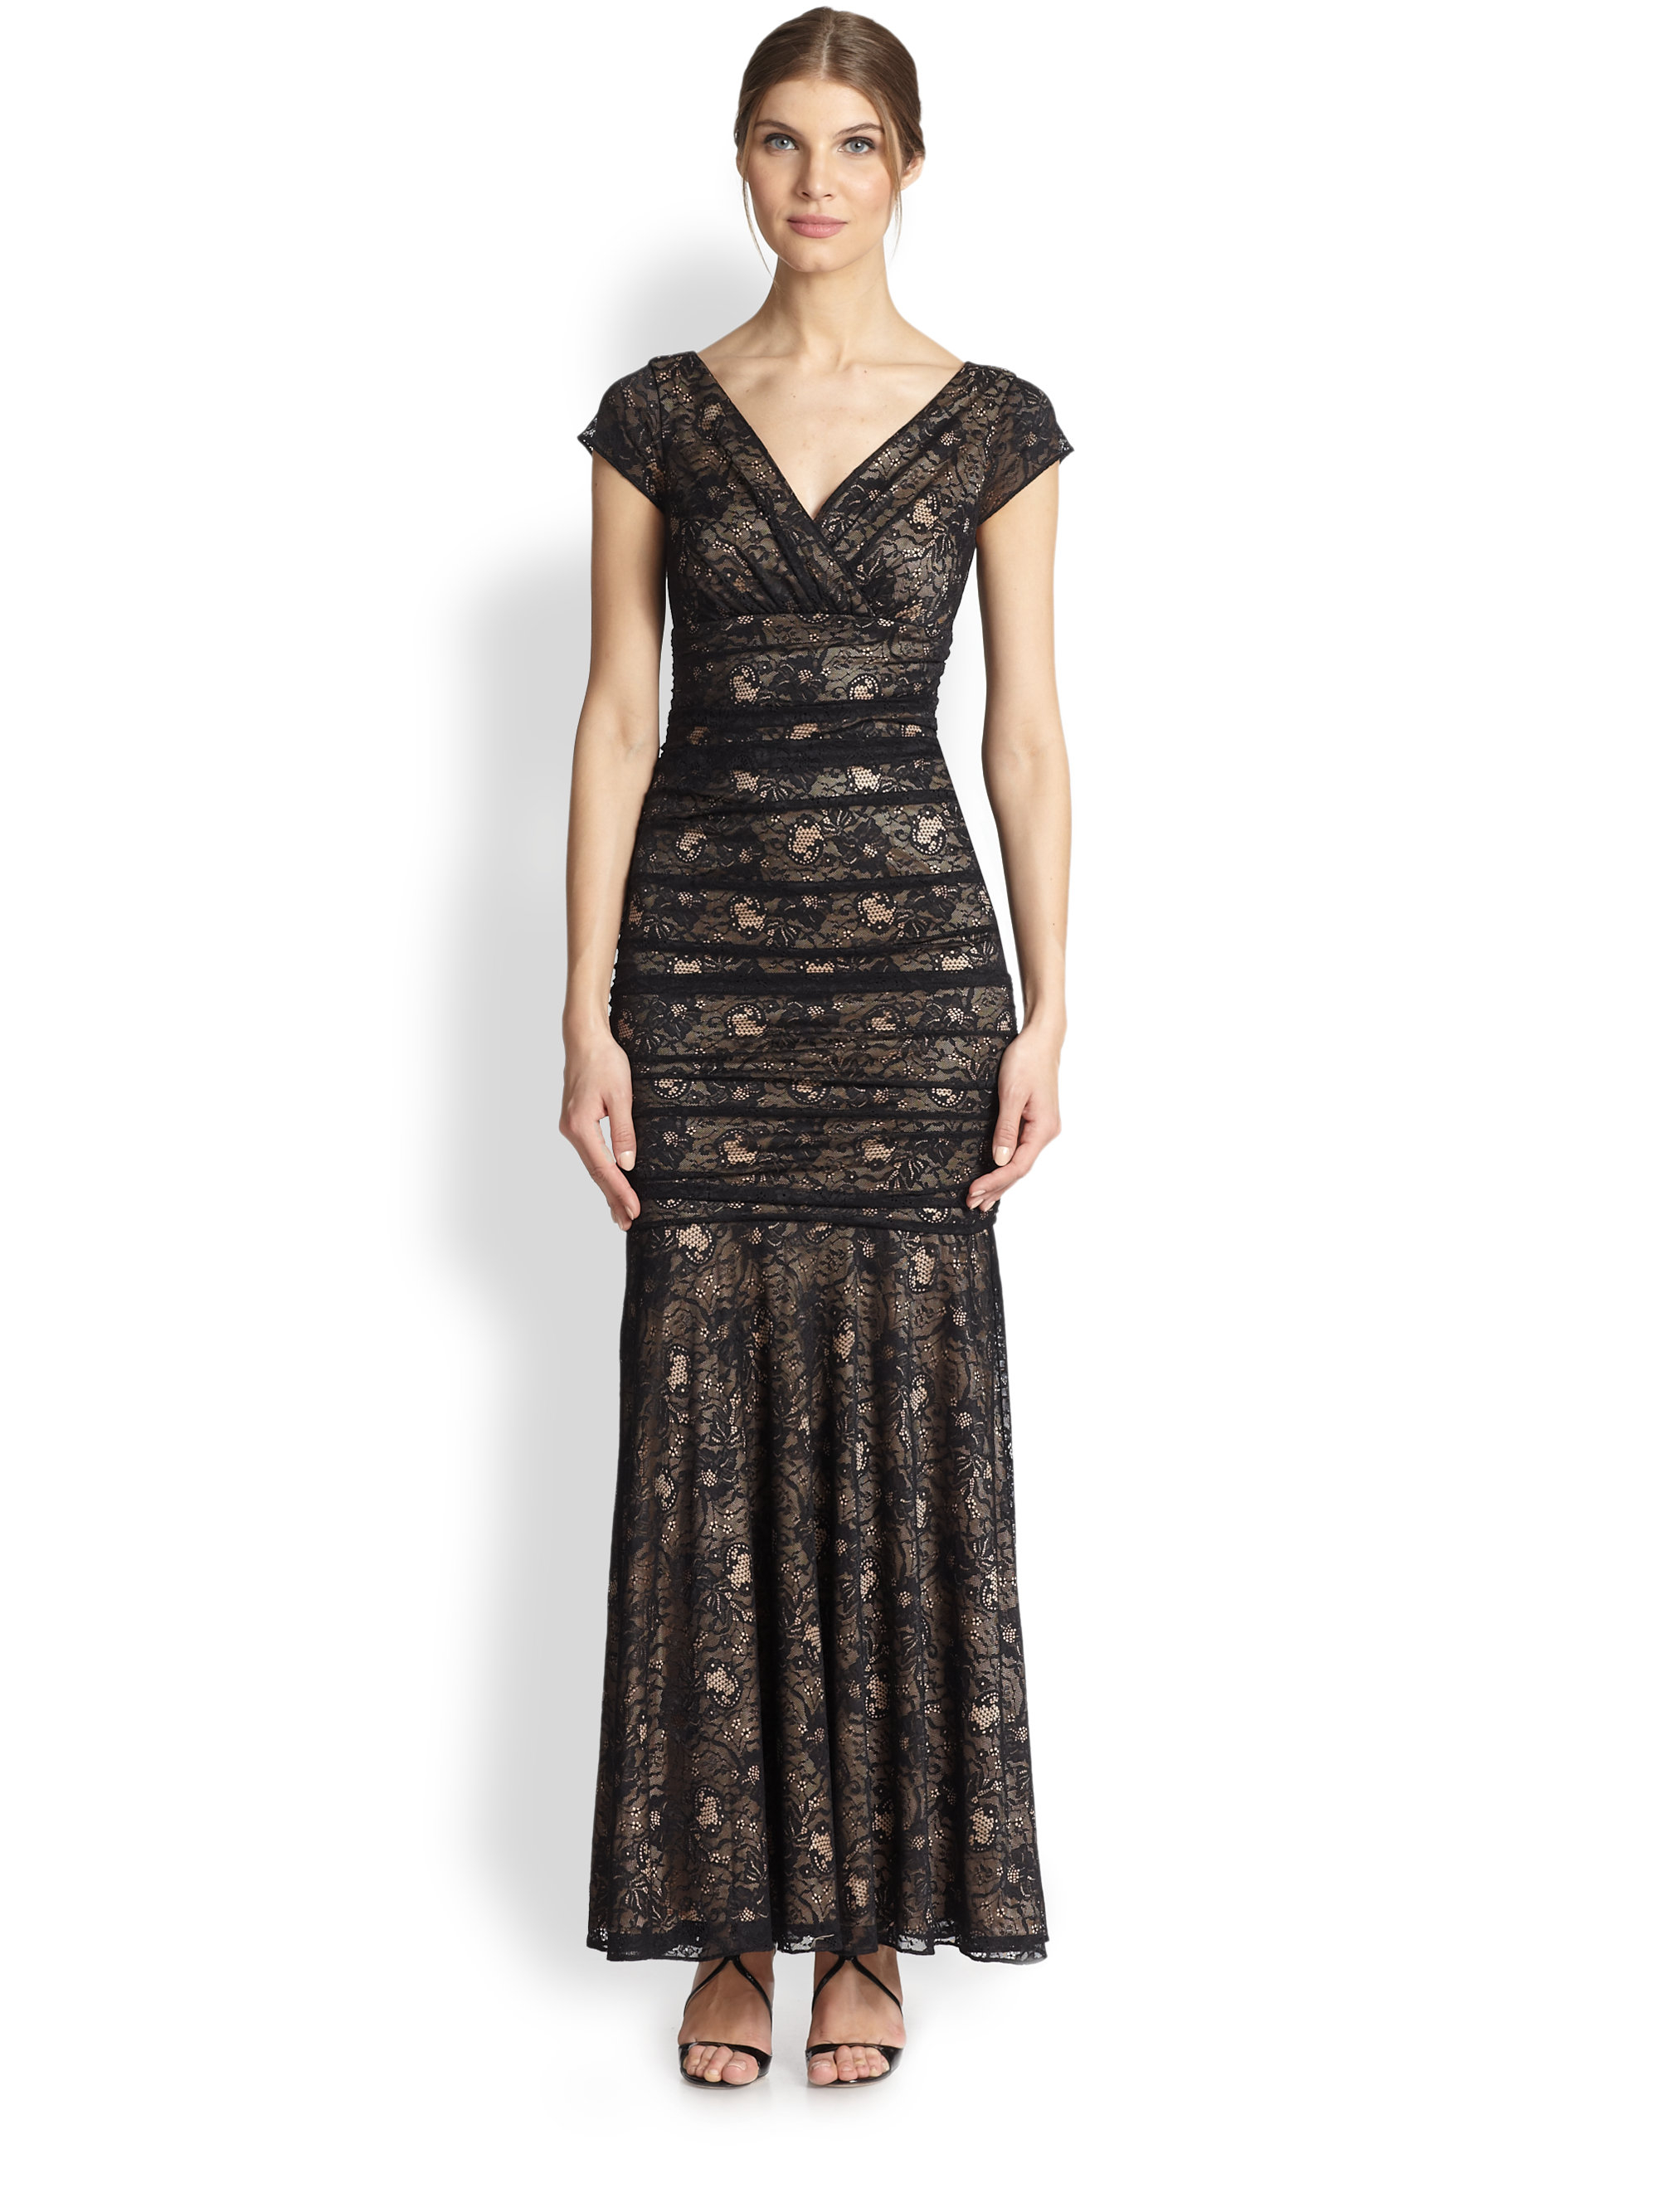 Dining Saks Fifth Avenue Petite Evening Dresses Saks Fifth Avenue Petite Evening Dresses Size Prom Dresses Saks Fifth Avenue Dress Shoes Saks Fifth Avenue Dress Code Policy wedding dress Saks Fifth Avenue Dresses